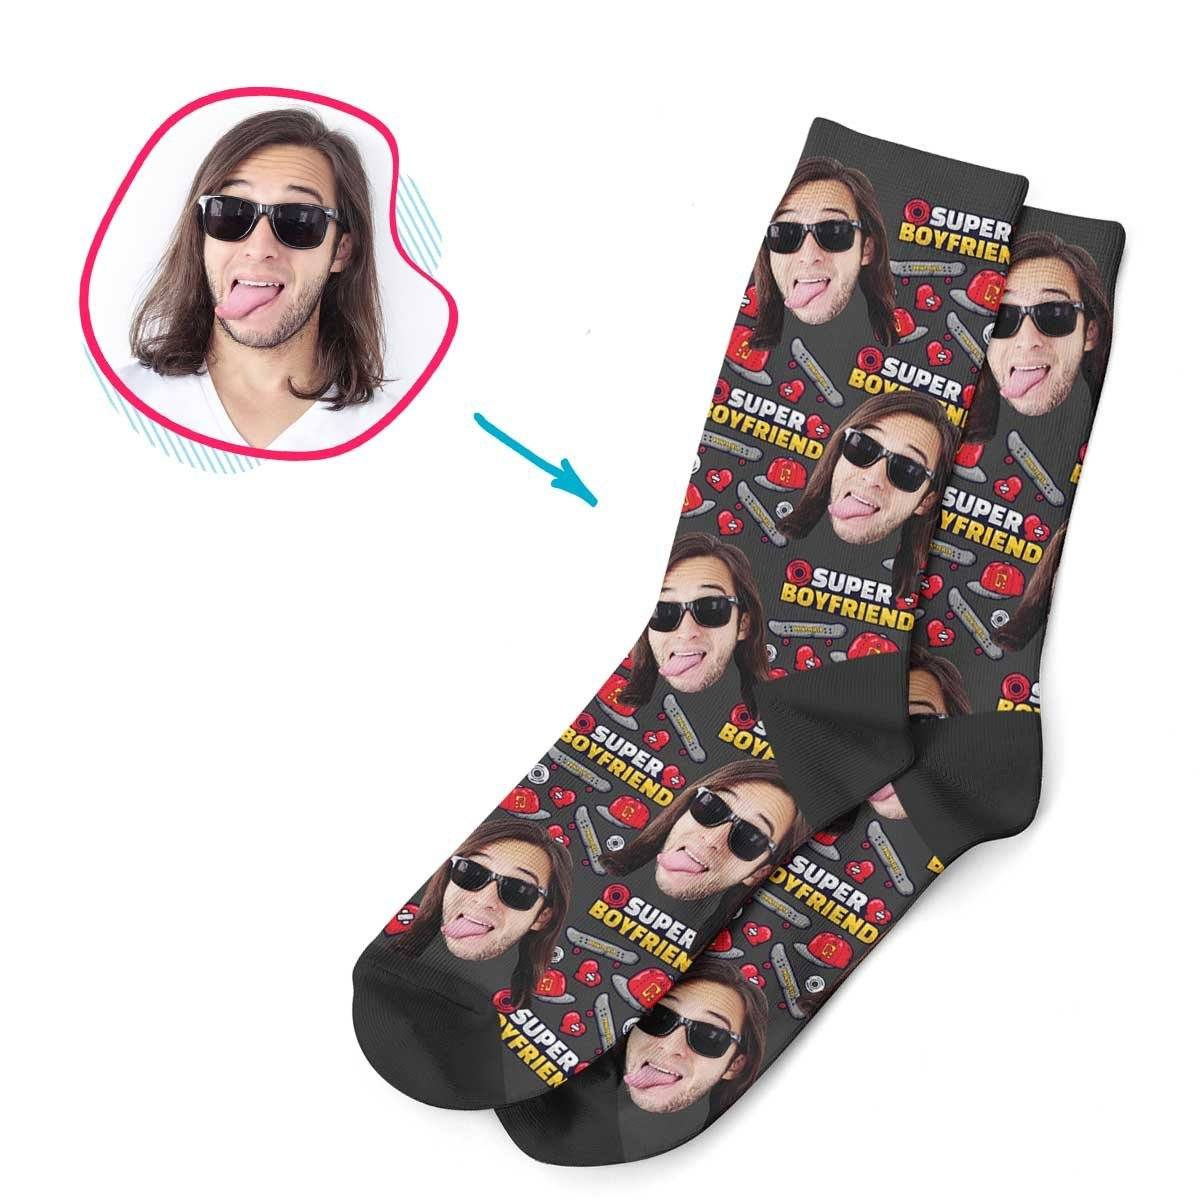 Dark Boyfriend personalized socks with photo of face printed on them